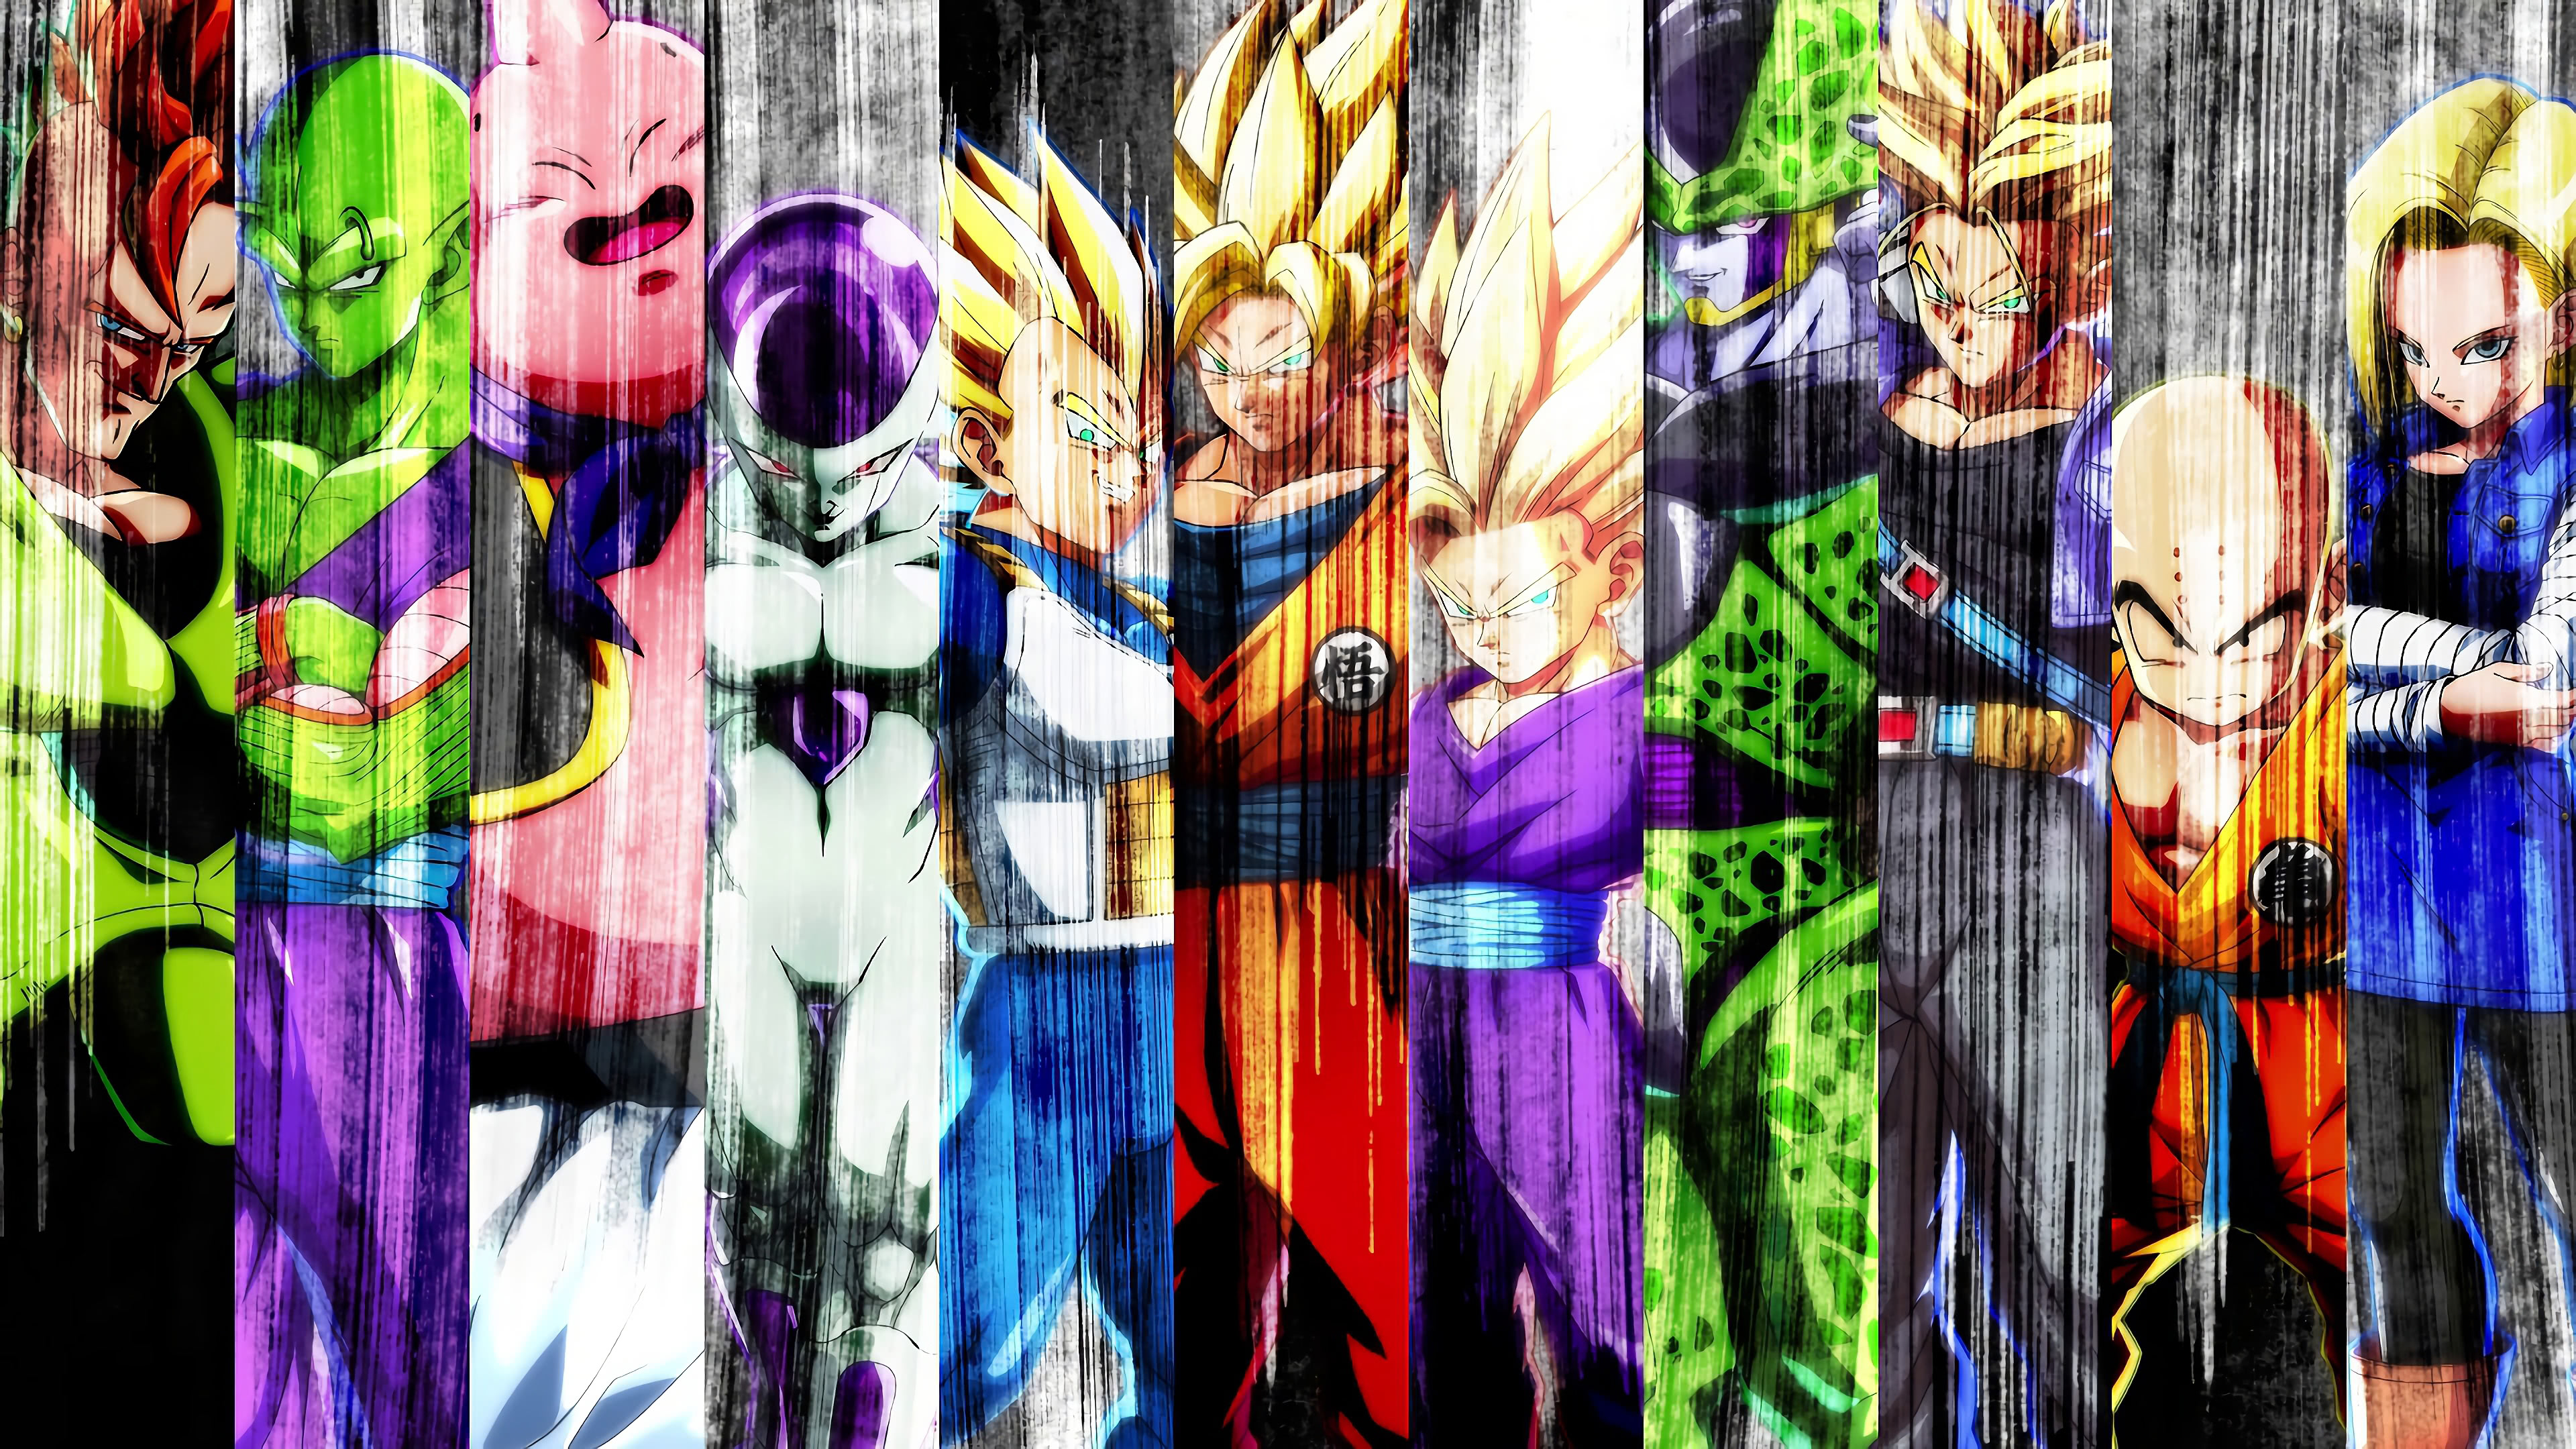 dragon ball fighterz characters uhd 4k wallpaper